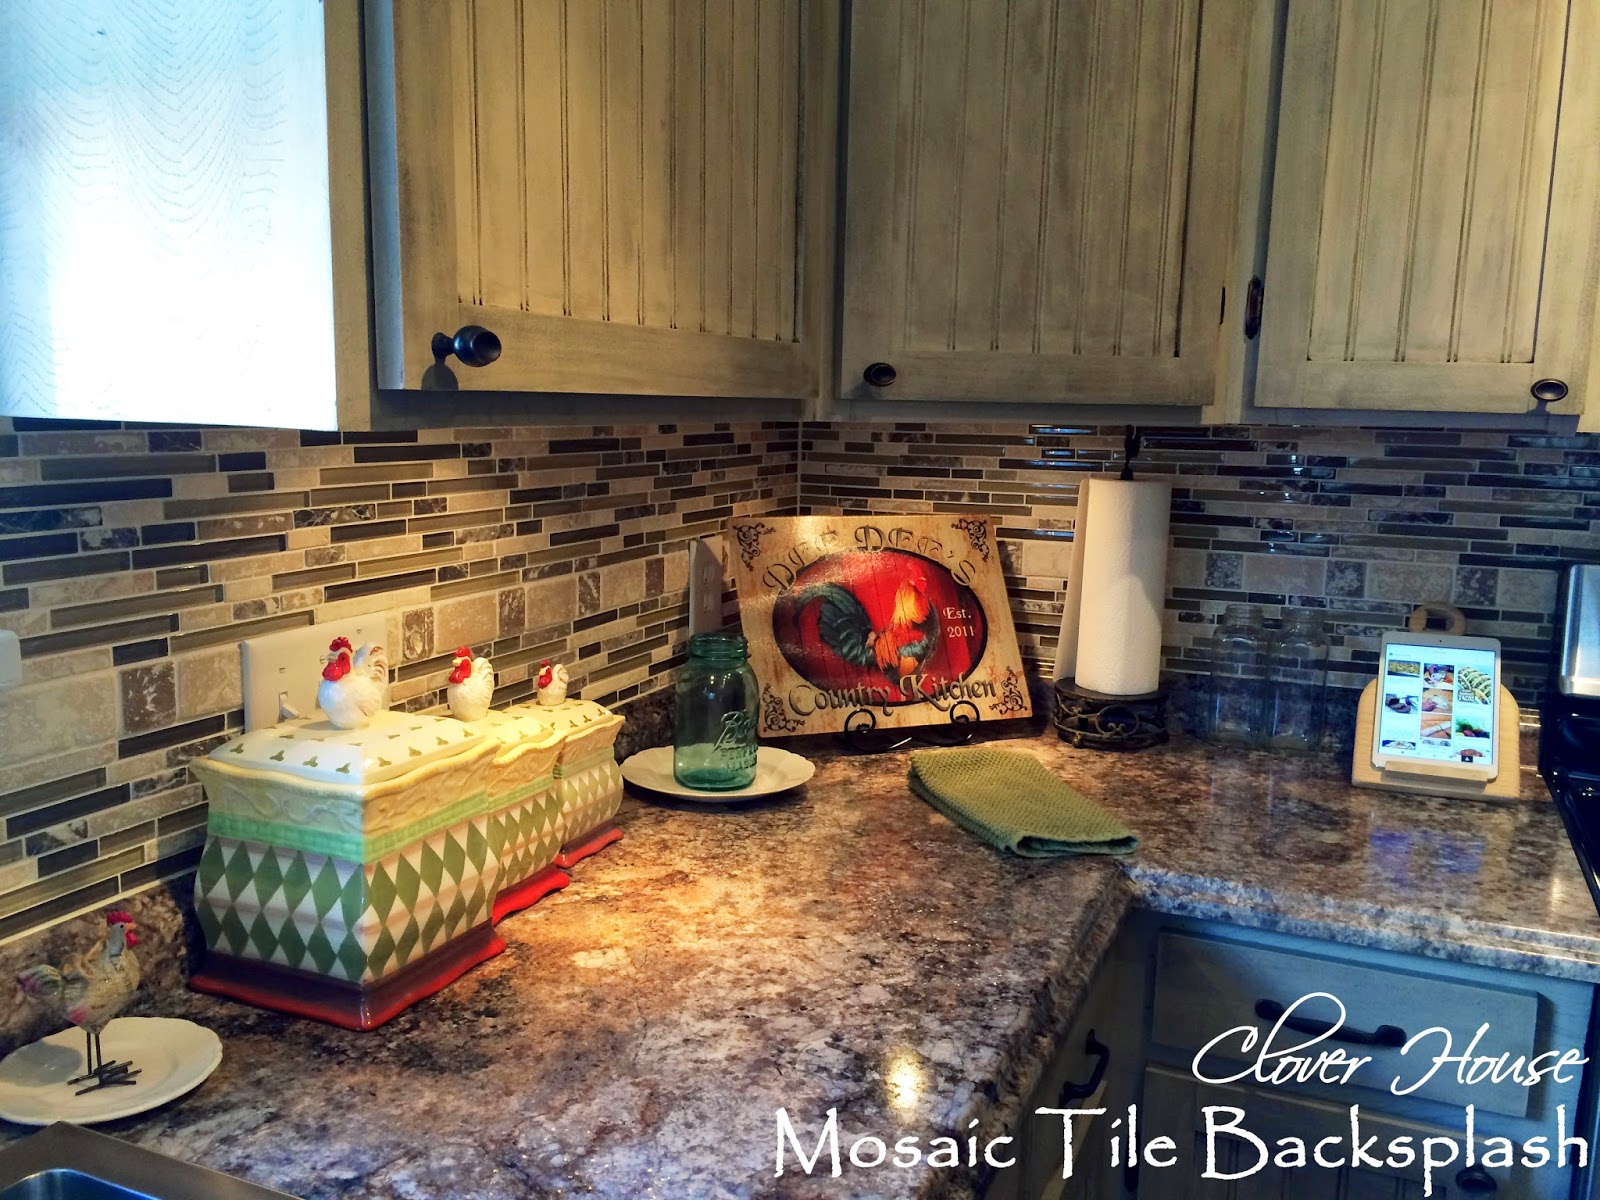 clover house diy mosaic tile backsplash